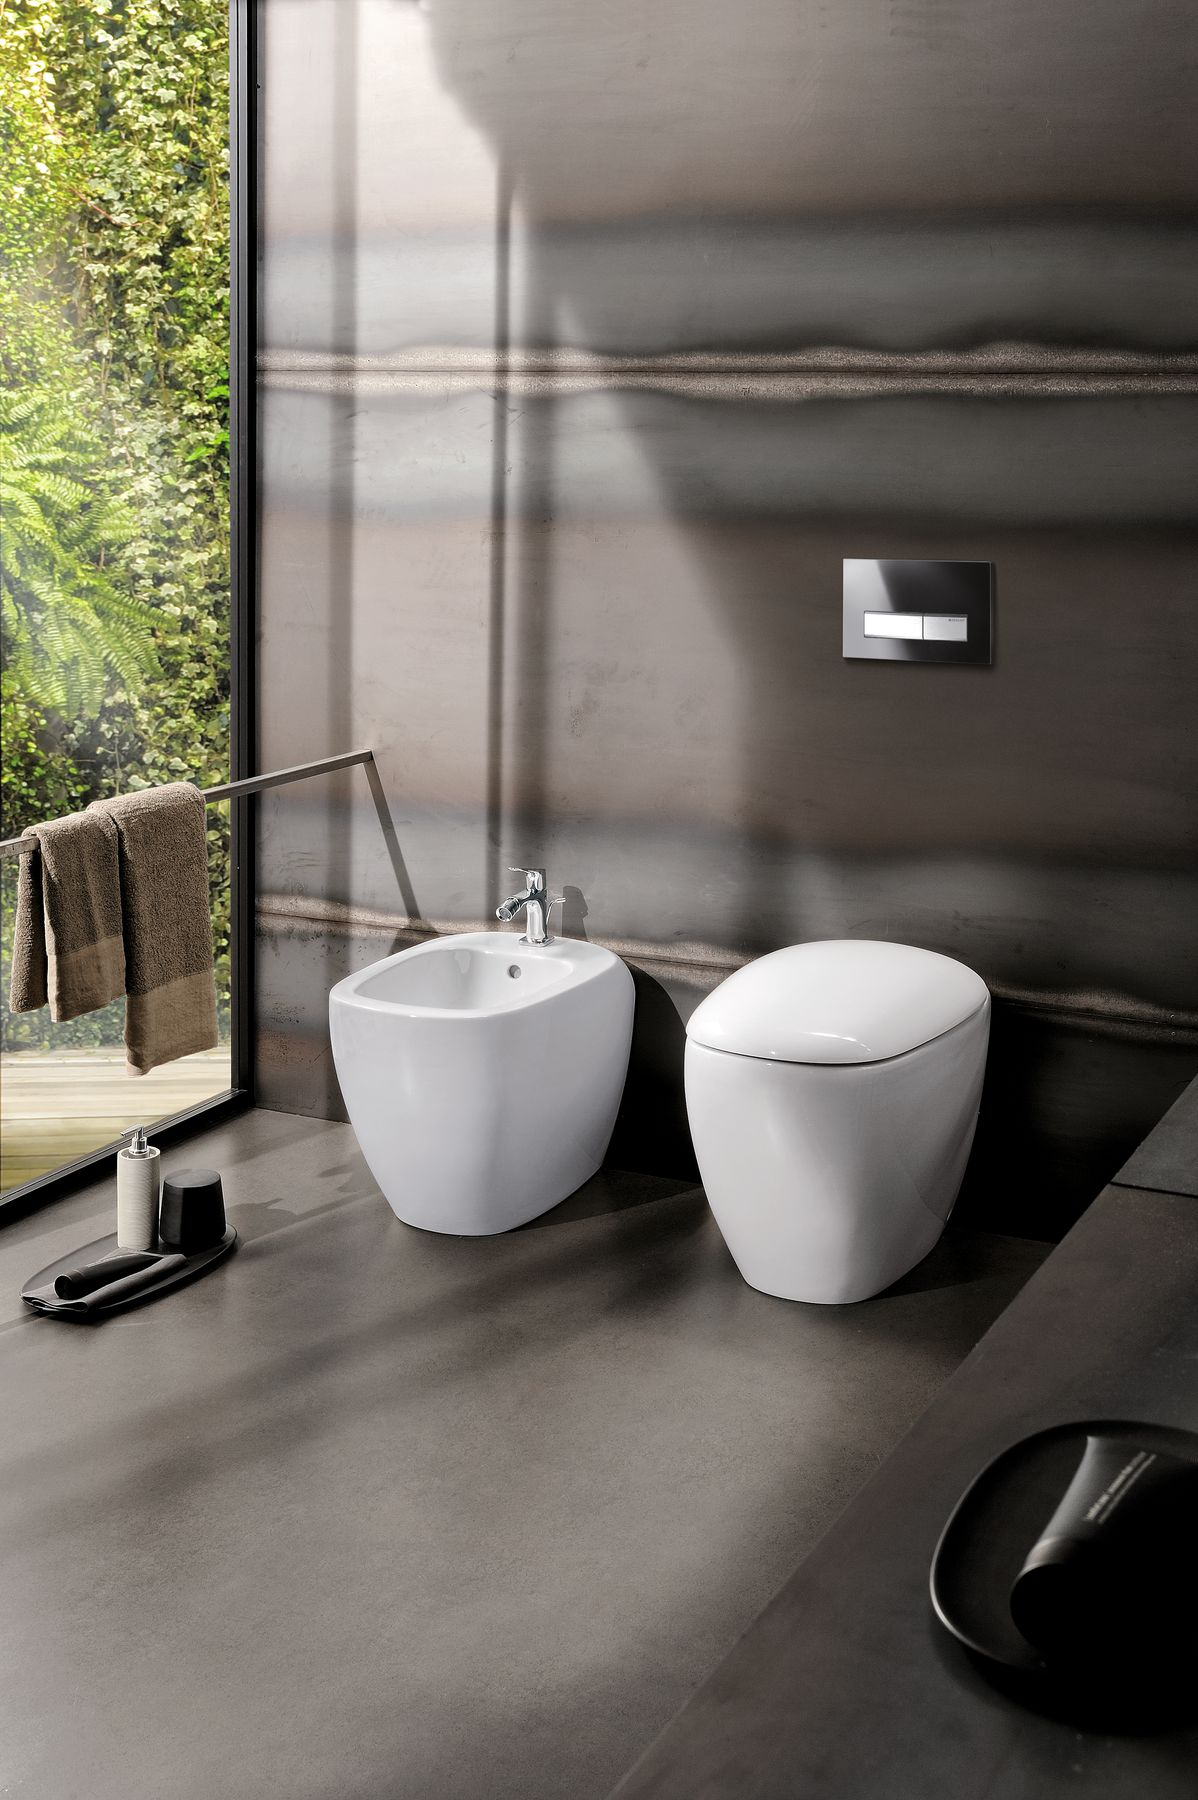 2016 Bathroom 11 Citterio.tif_bigview.jpg